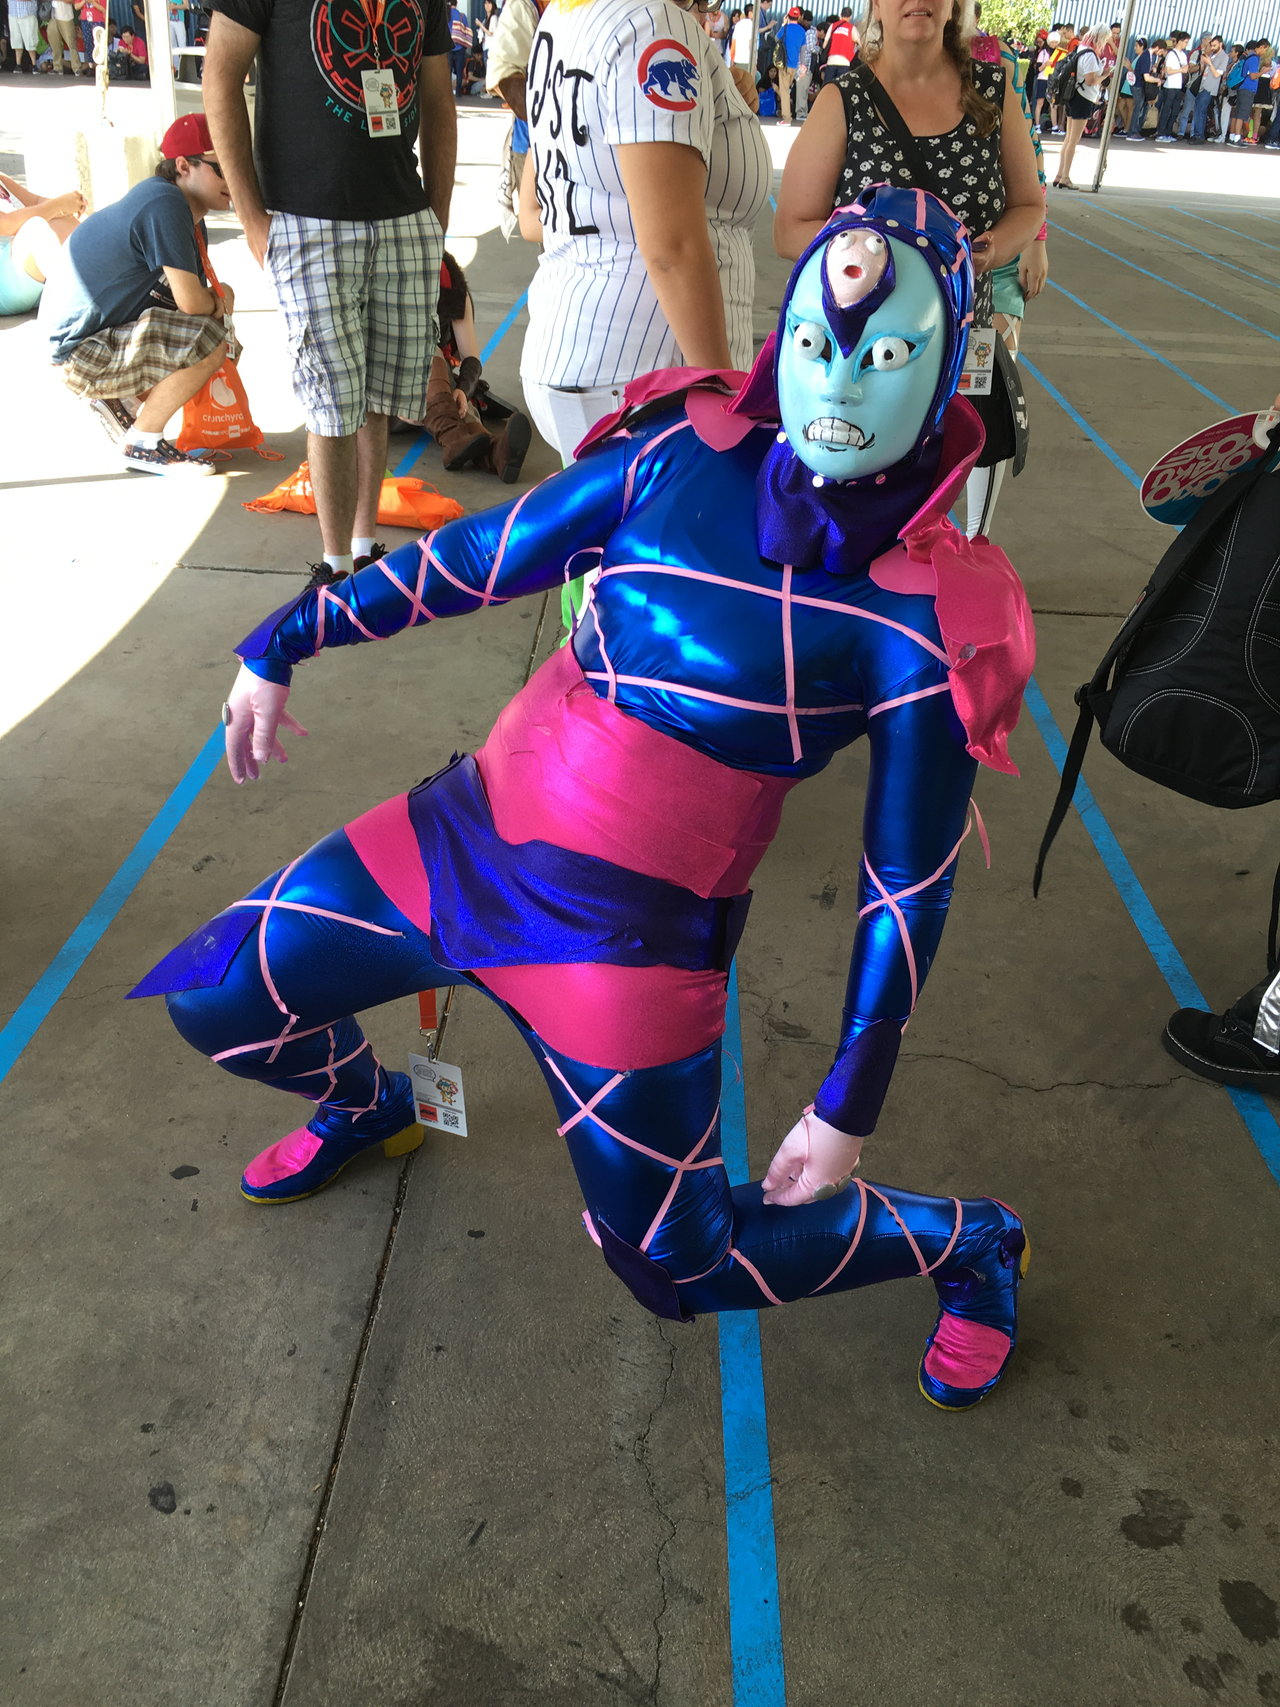 Big Gallery Of Our Favorite Anime Expo Cosplay IGN